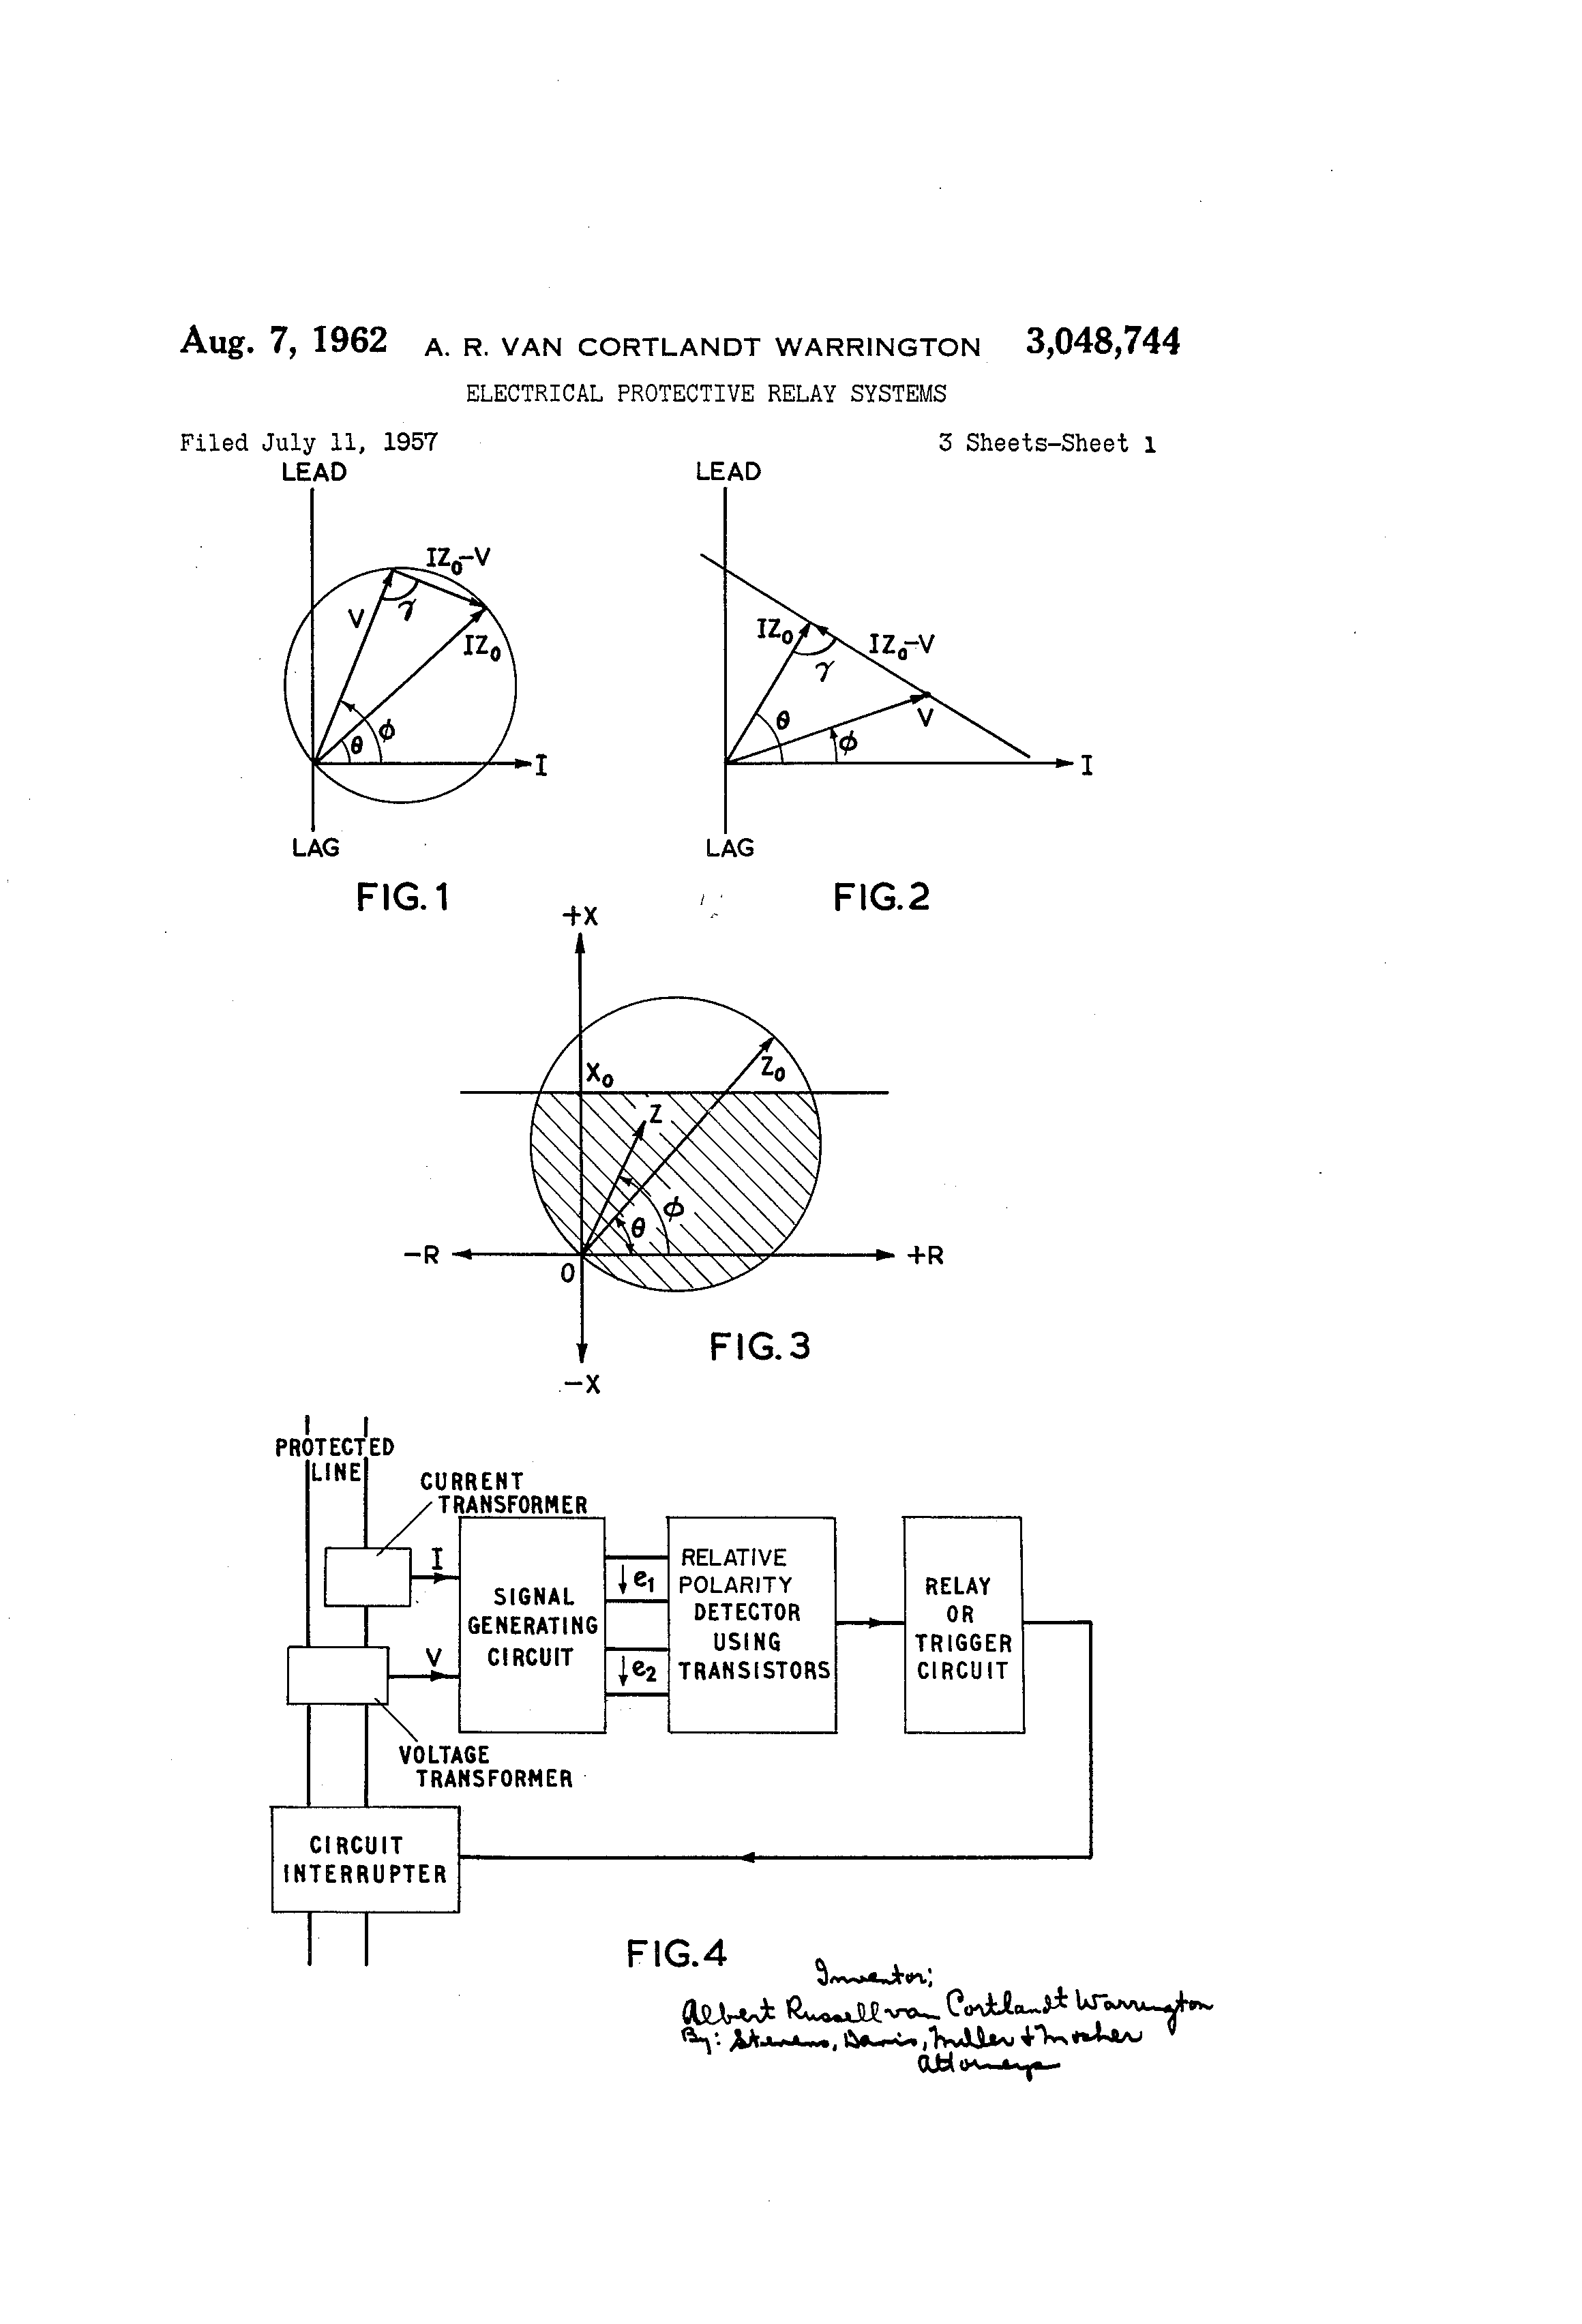 Patent US Electrical Protective Relay Systems Google - Static relay working principle